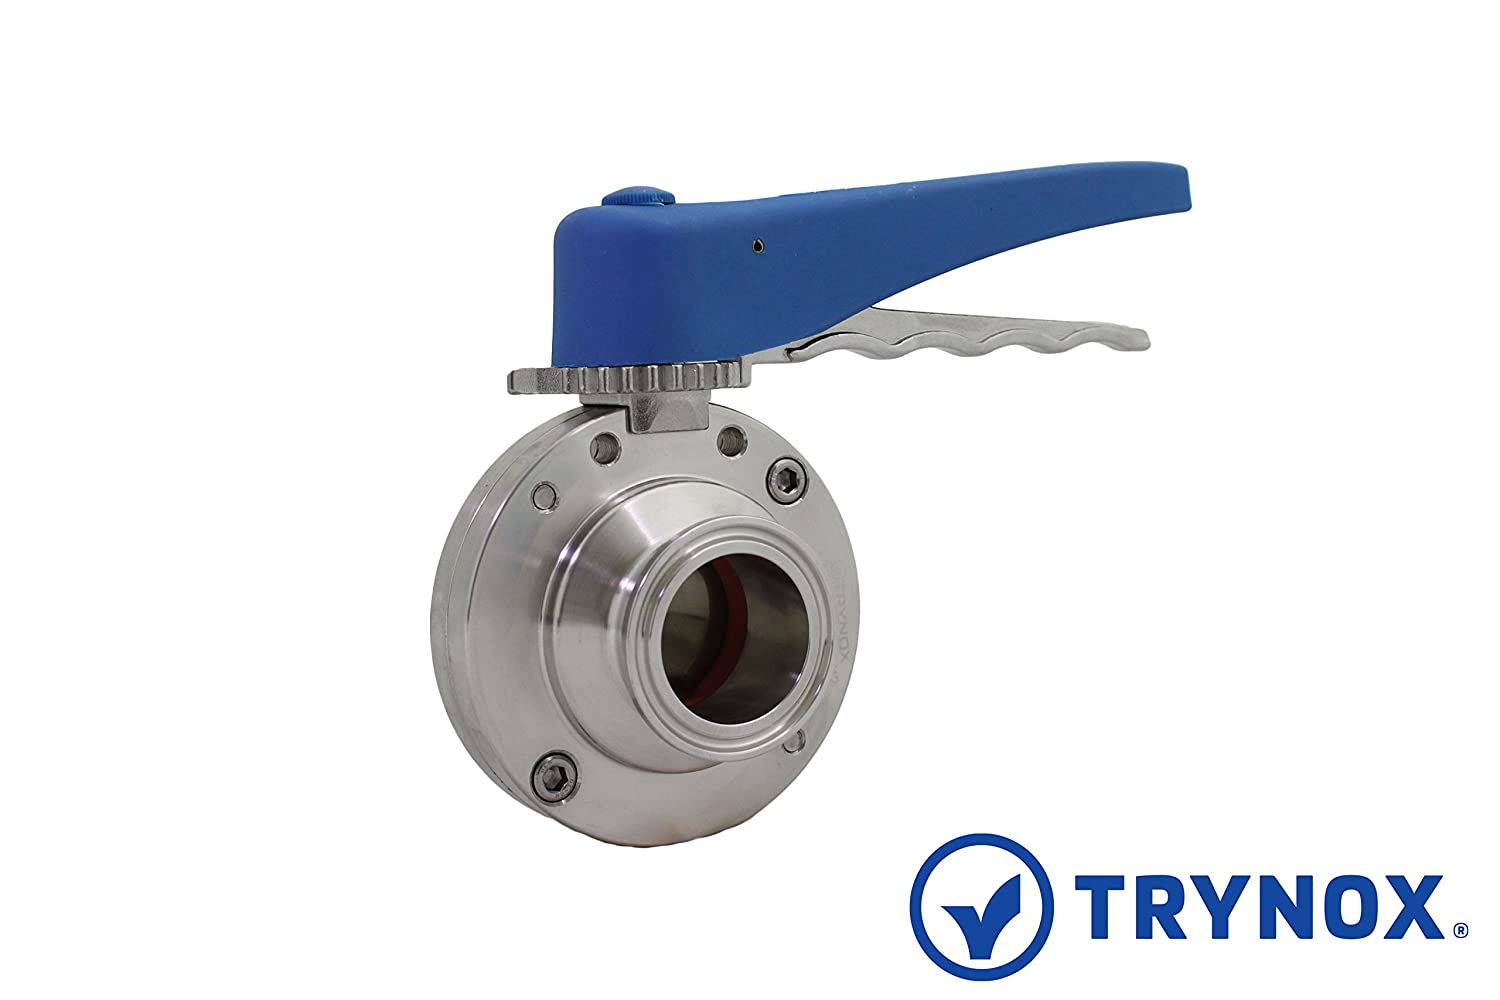 Trynox Clamp Sanitary Stainless Steel Ball Valve 304 3 Sanitary Fitting